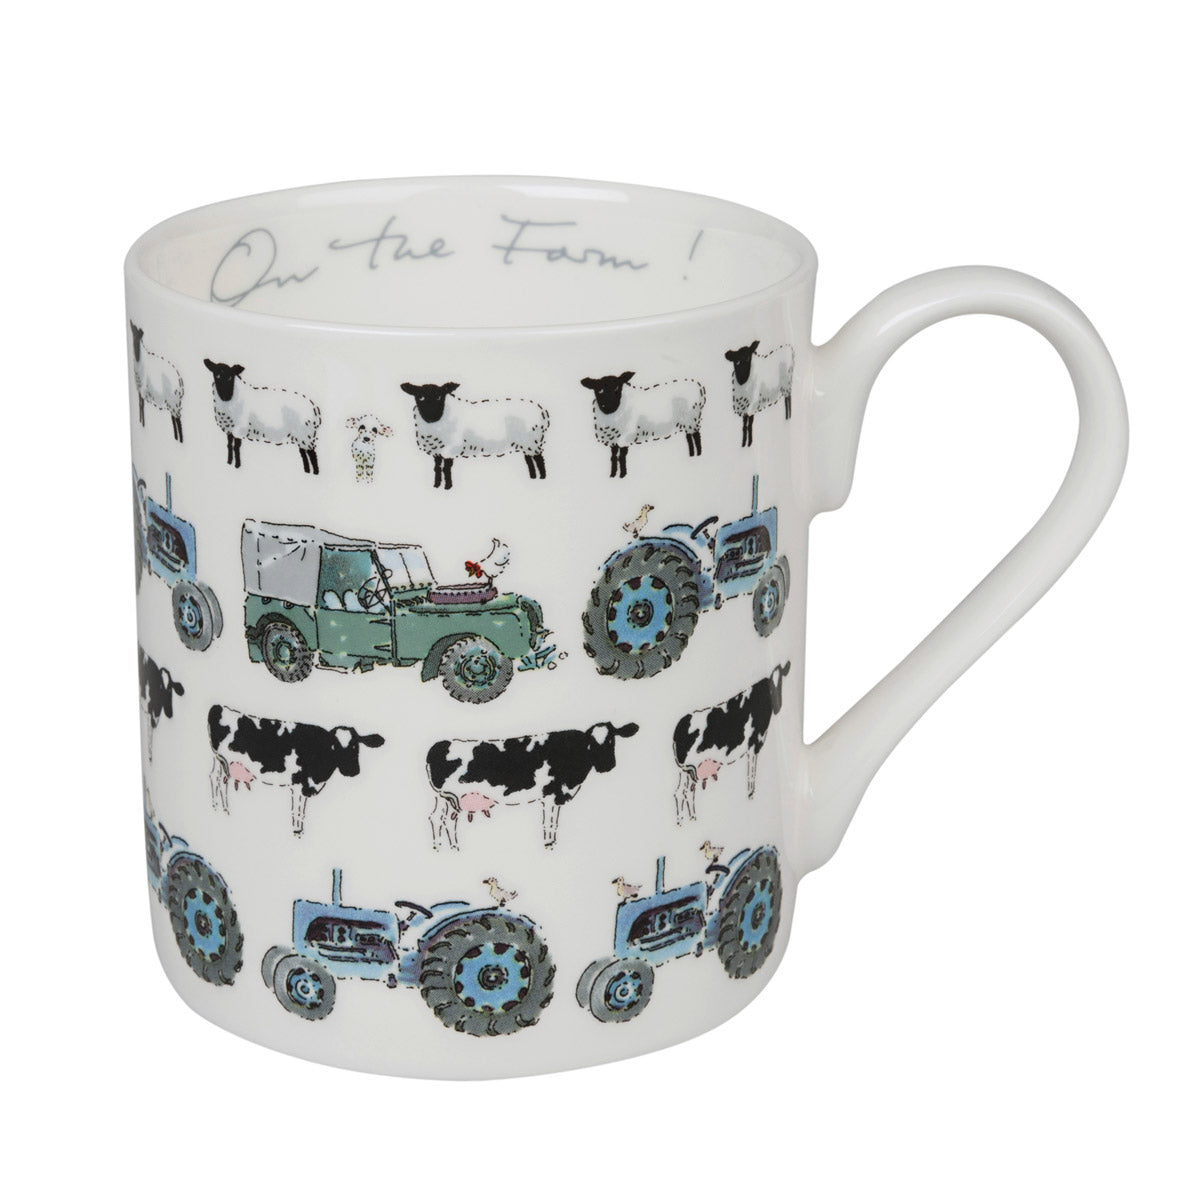 On The Farm Mug